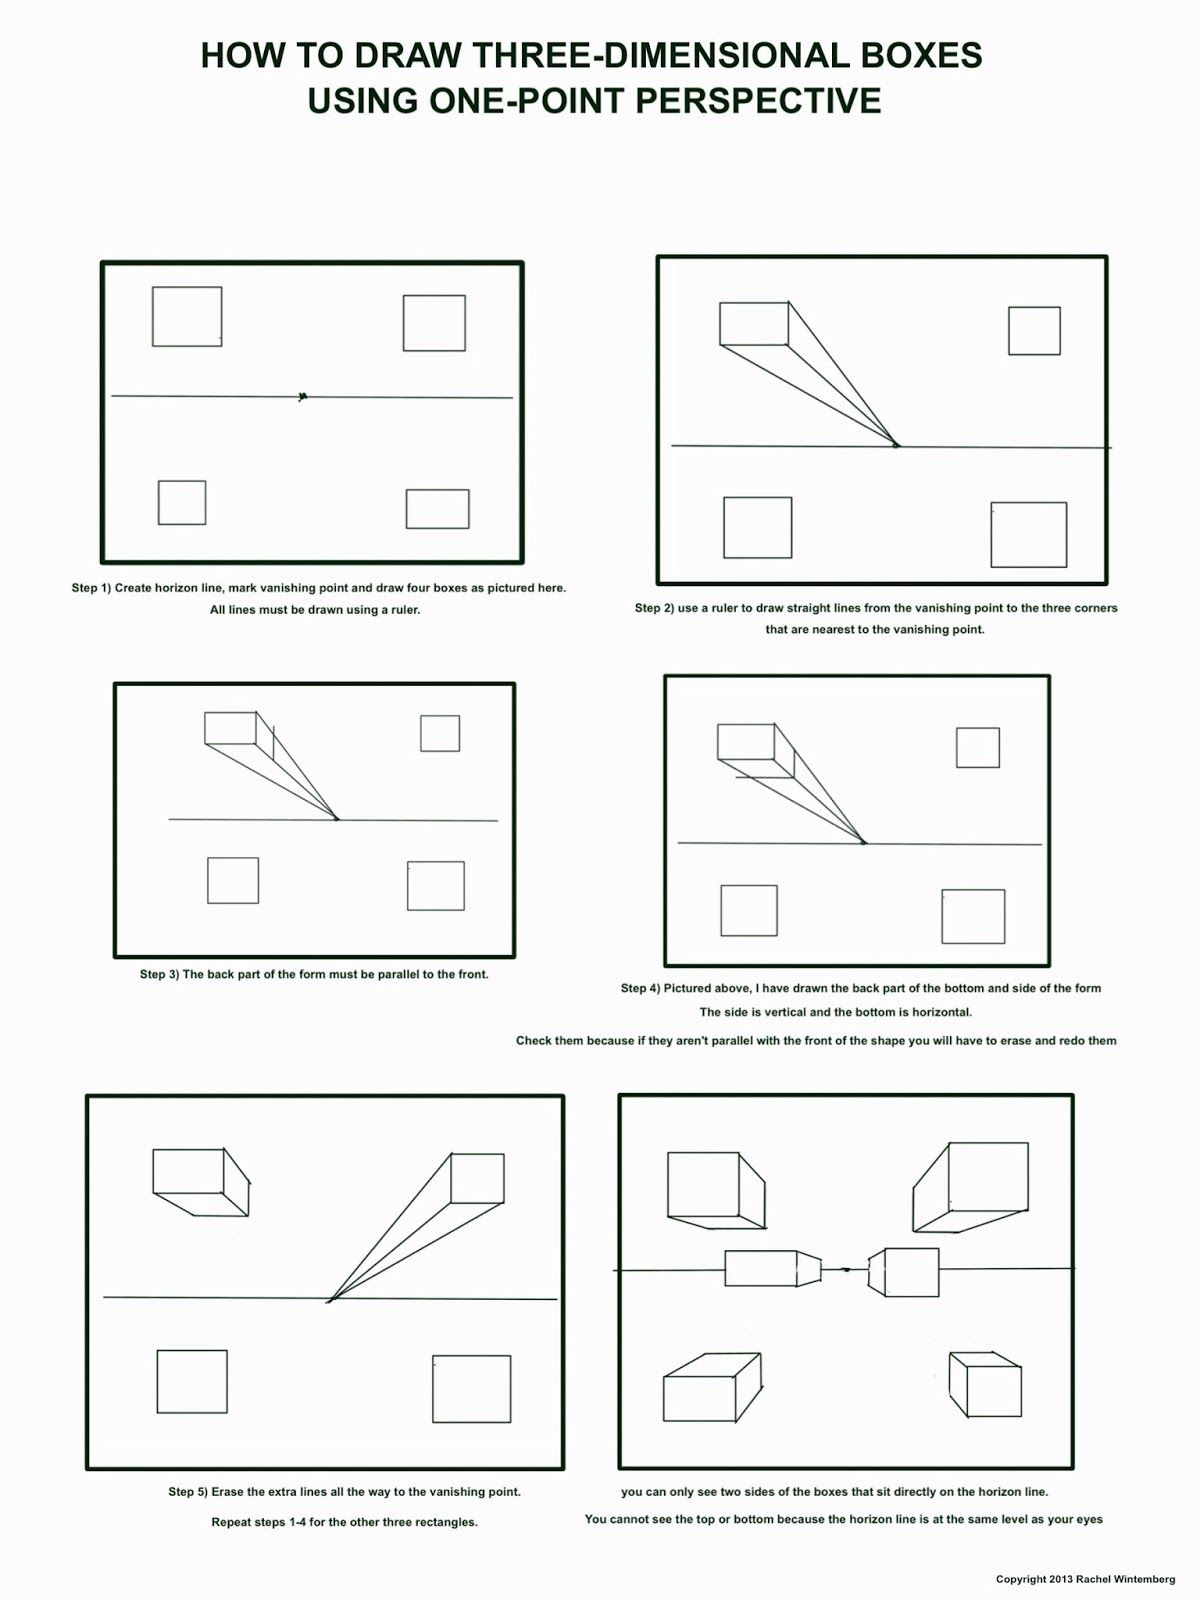 Worksheets One Point Perspective Worksheet the helpful art teacher fun with one point perspective boxes and other geometric forms